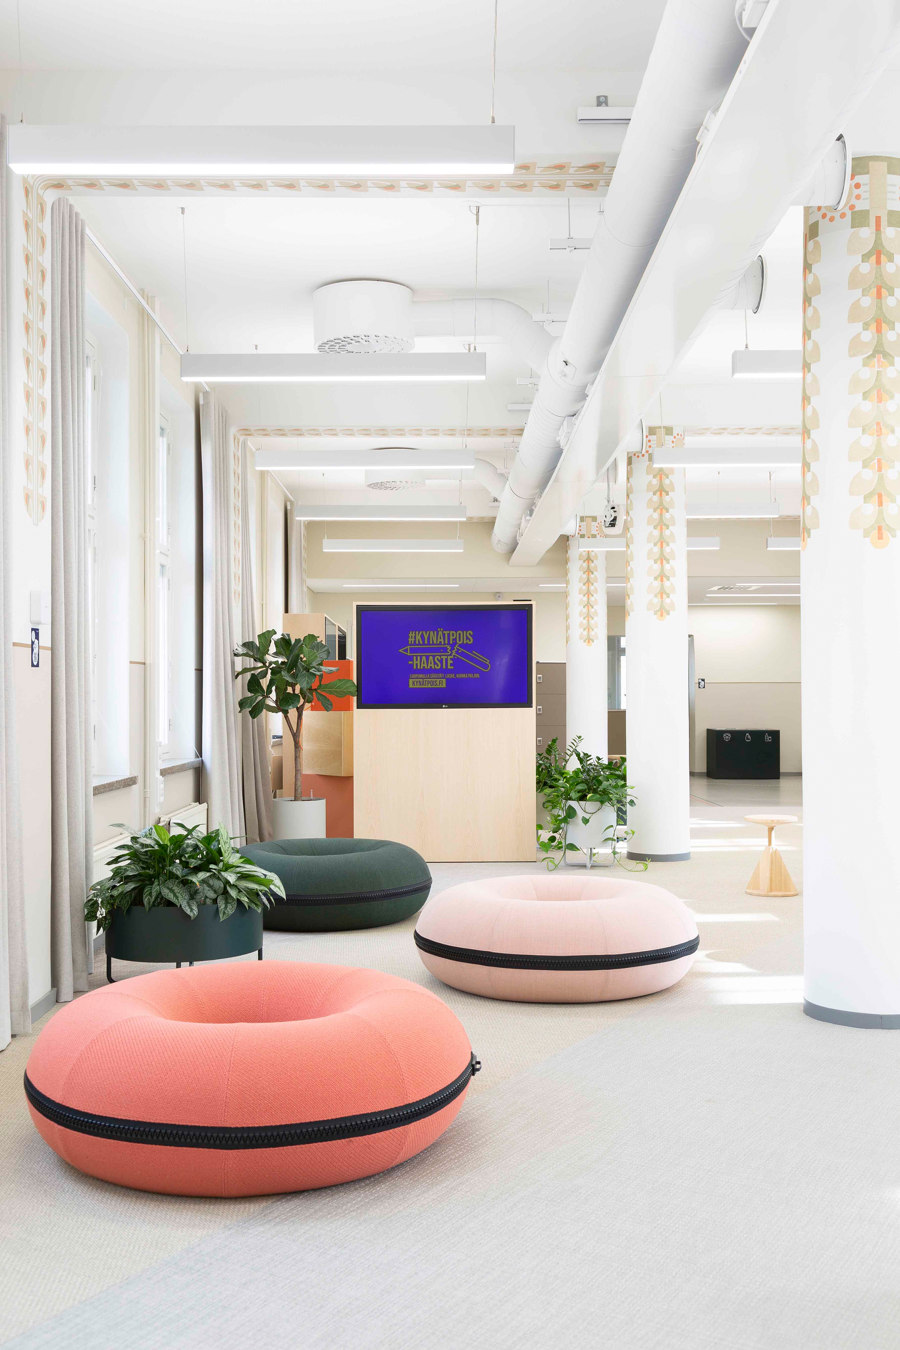 Urban3 - Coworking Hub by Mint & More Creative | Office facilities